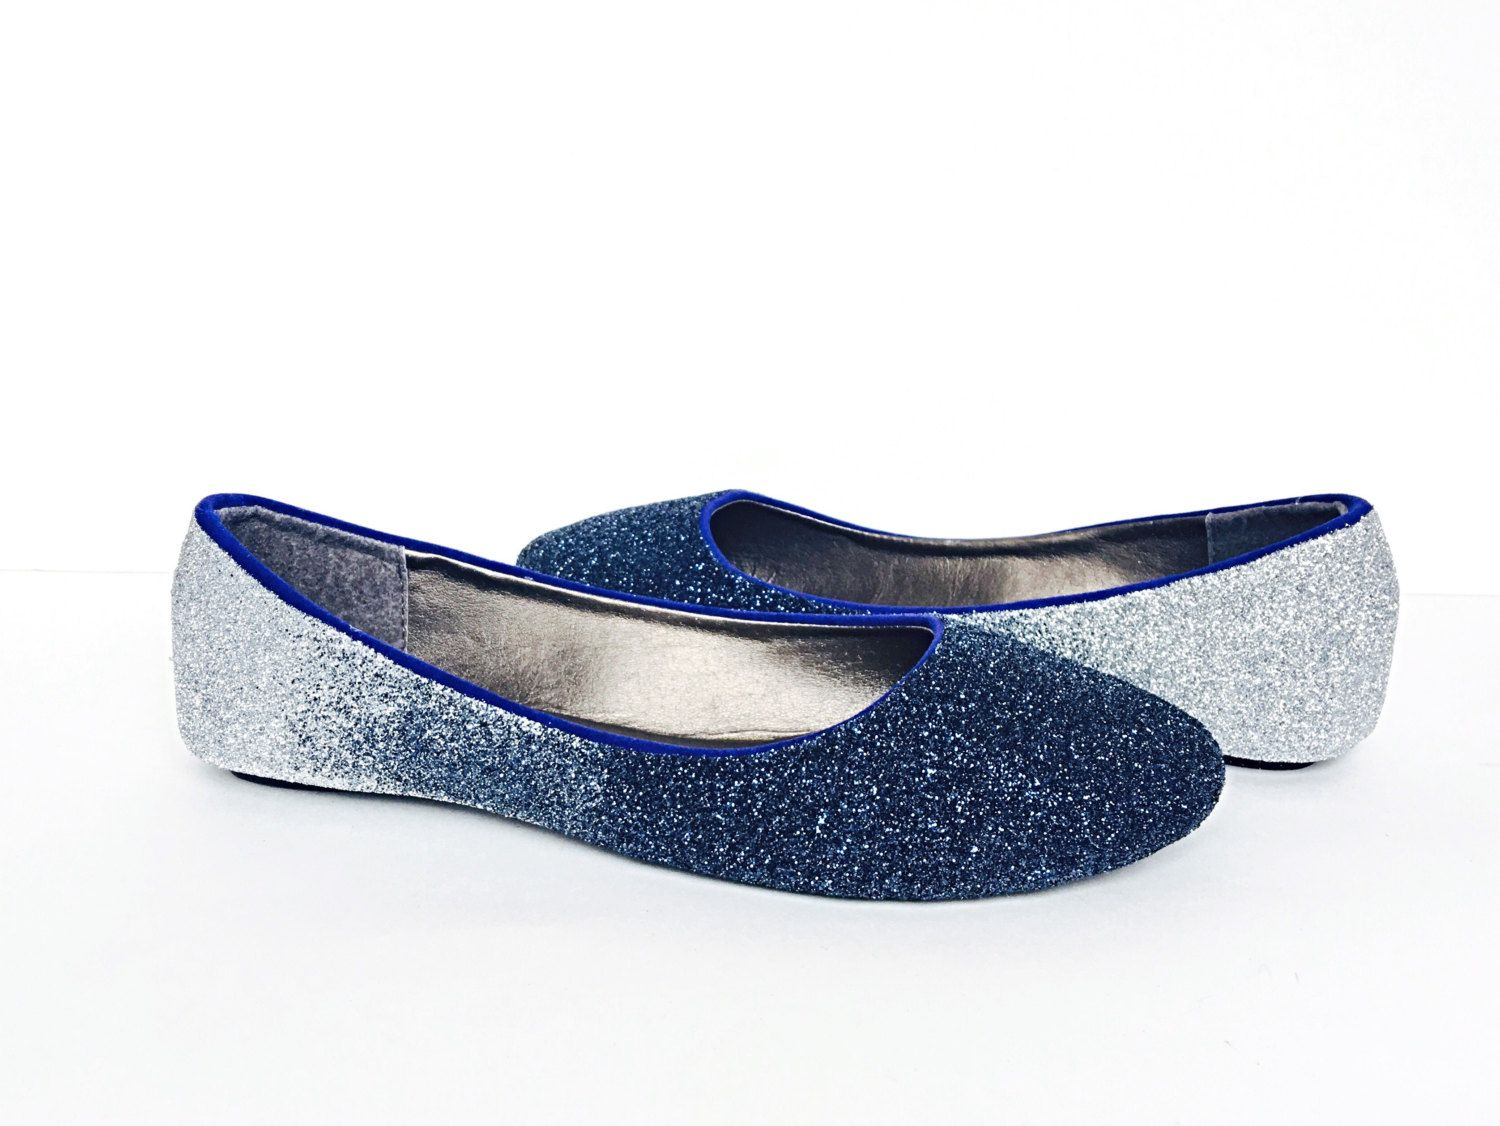 Glitter Flats Navy Blue Silver Ombre Fade Shoes Something Wedding